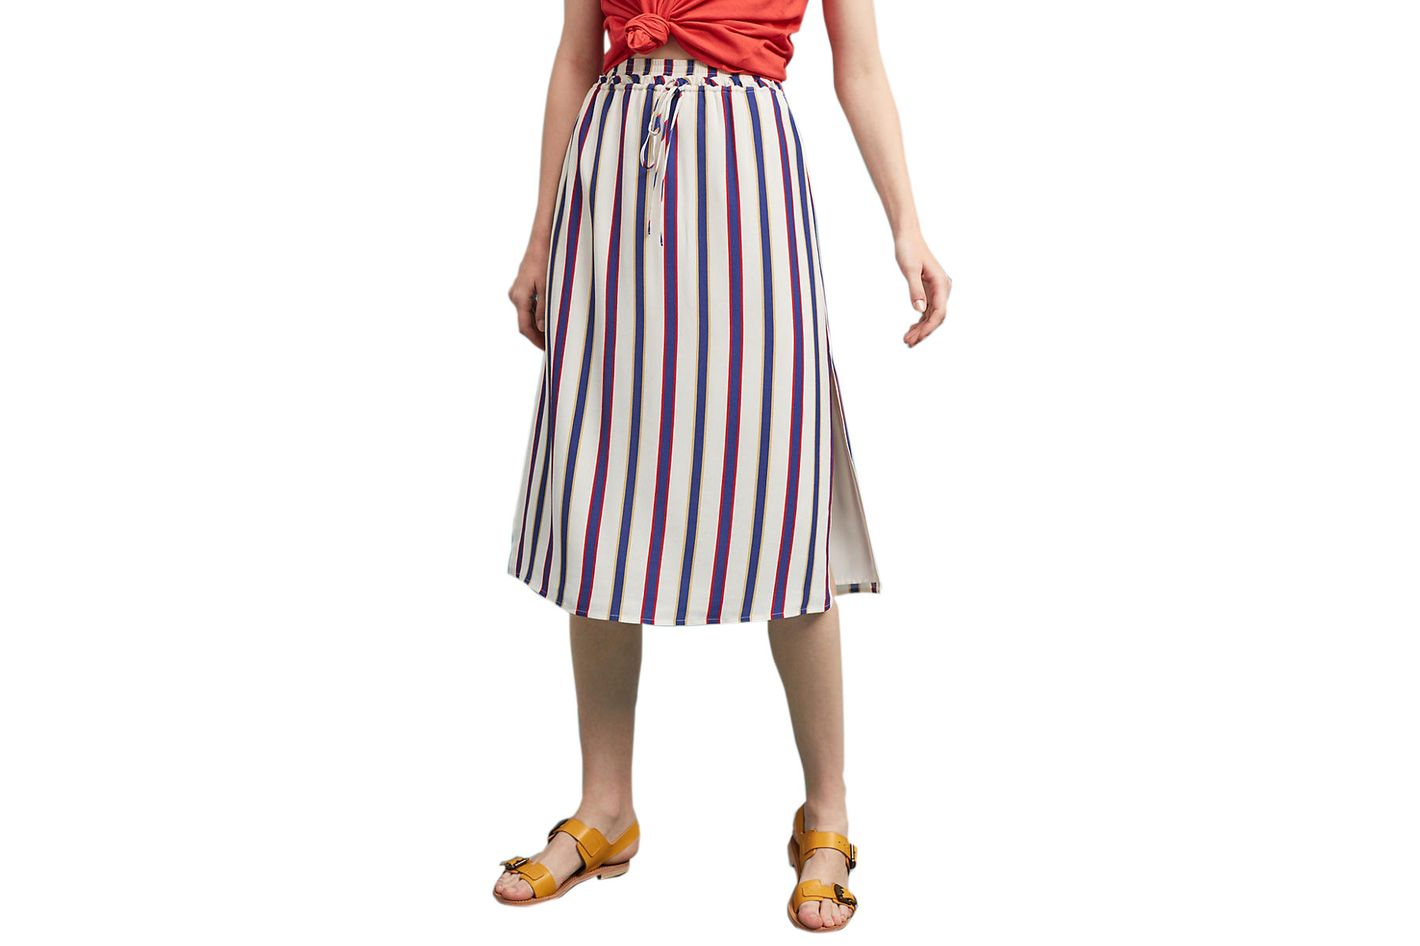 Privacy Please Arden Striped Skirt